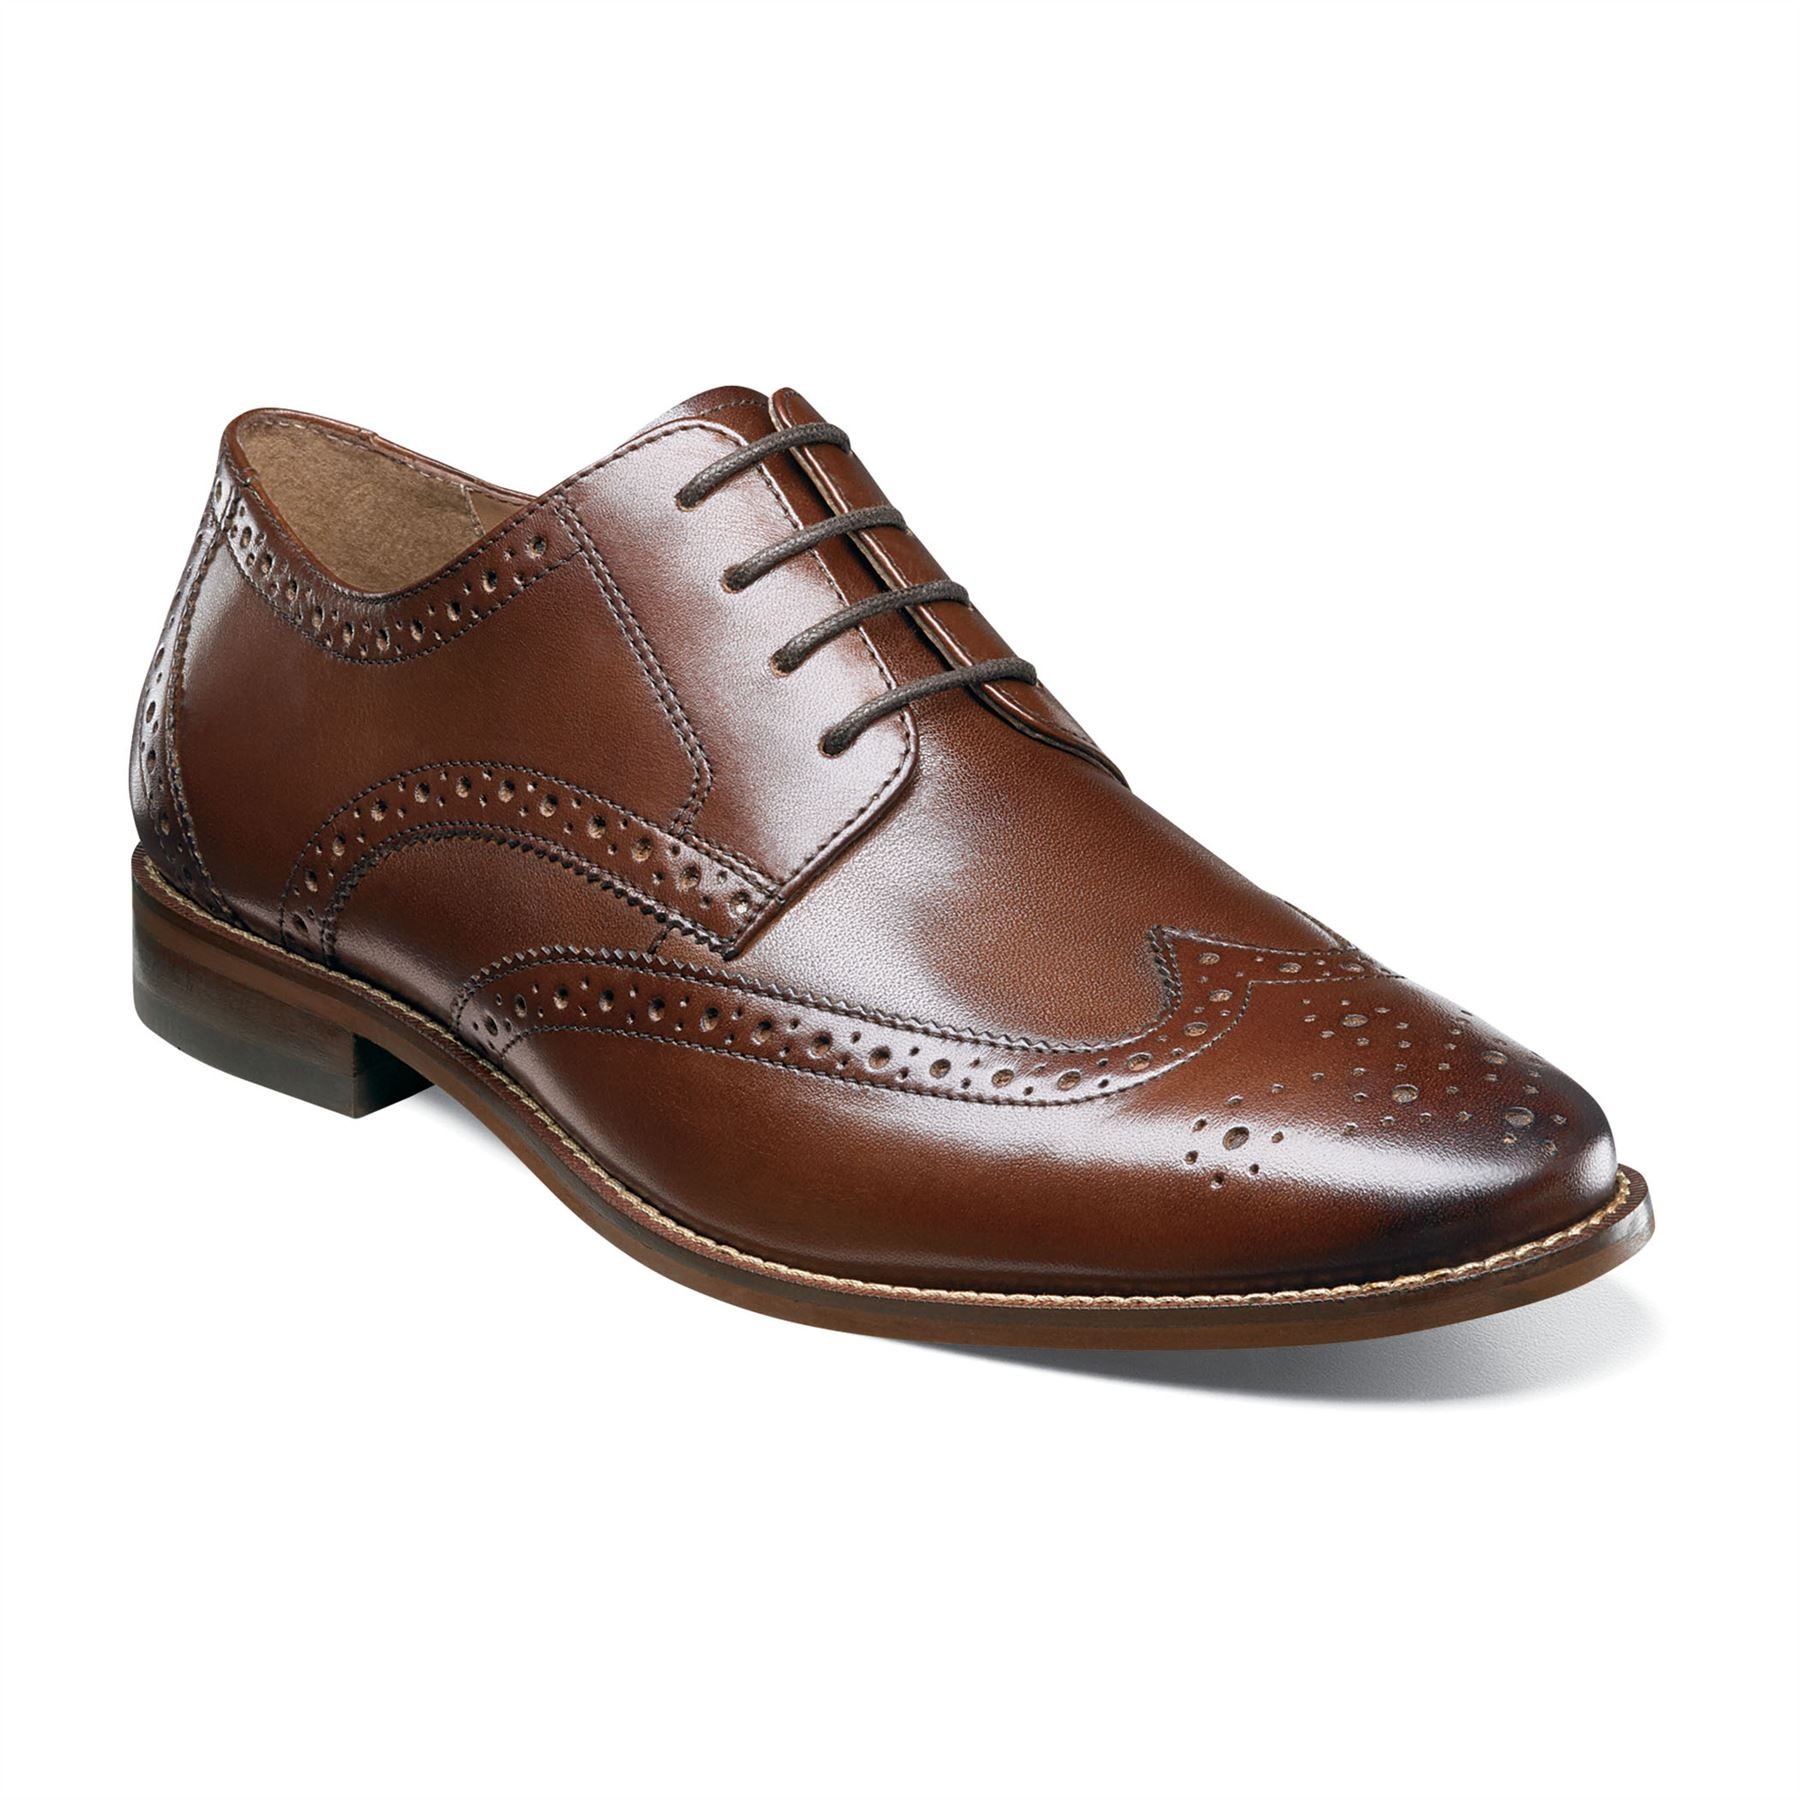 Men's Florsheim Montinaro Wingtip Oxford Dress Shoes in China for sale clearance perfect cheap reliable M3Fn7